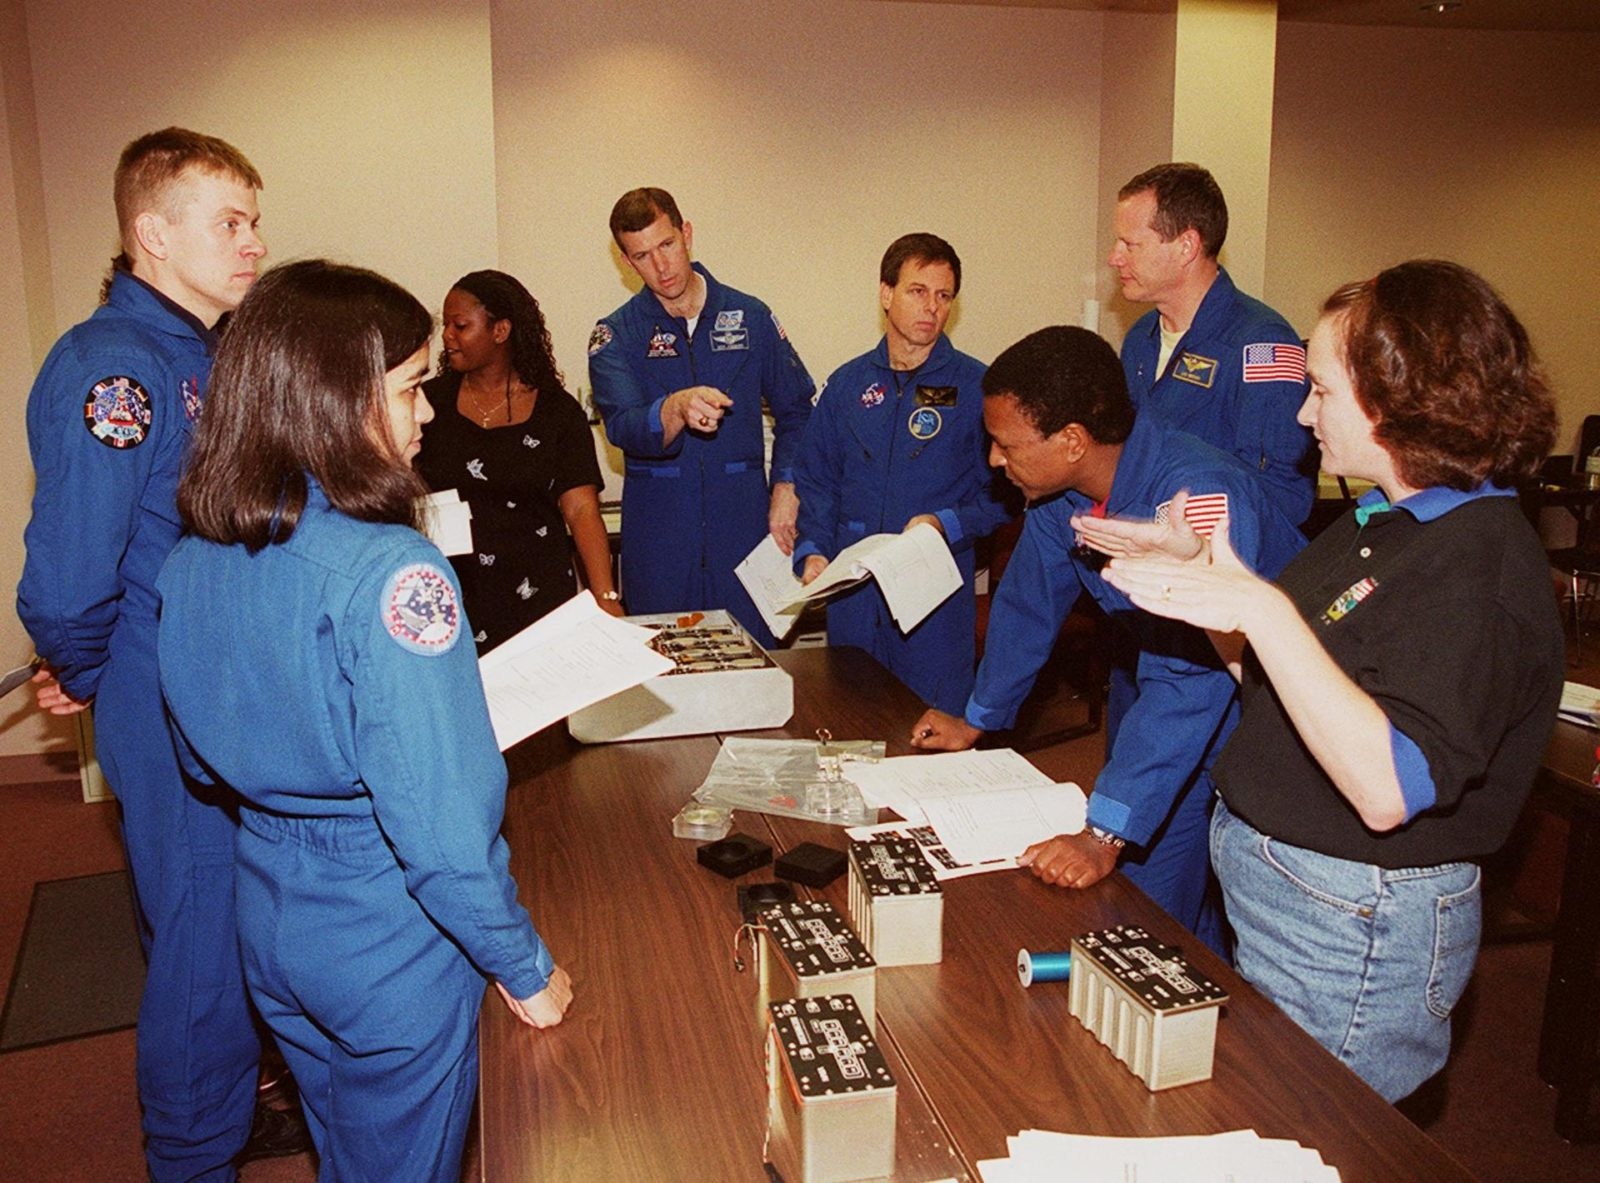 """KENNEDY SPACE CENTER, FLA. -- As part of In-Flight Maintenance training at SPACEHAB, in Cape Canaveral, Fla., the STS-107 crew learns about Biological Research in Canisters (BRIC) experiments that will be on their mission. From left are Mission Specialist Kalpana Chawla, Pilot William C. """"Willie"""" McCool, Roberteen McCray of Bionetics, Commander Rick D. Husband, Payload Specialist Ilan Ramon of Israel, and Mission Specialists David M. Brown and Michael Anderson. At right is Debbie Wells of Bionetics. Not seen is Mission Specialist Laurel Clark. STS-107 will carry a broad collection of experiments ranging from material science to life science. It is scheduled to launch July 19, 2001 KSC00pp1860"""